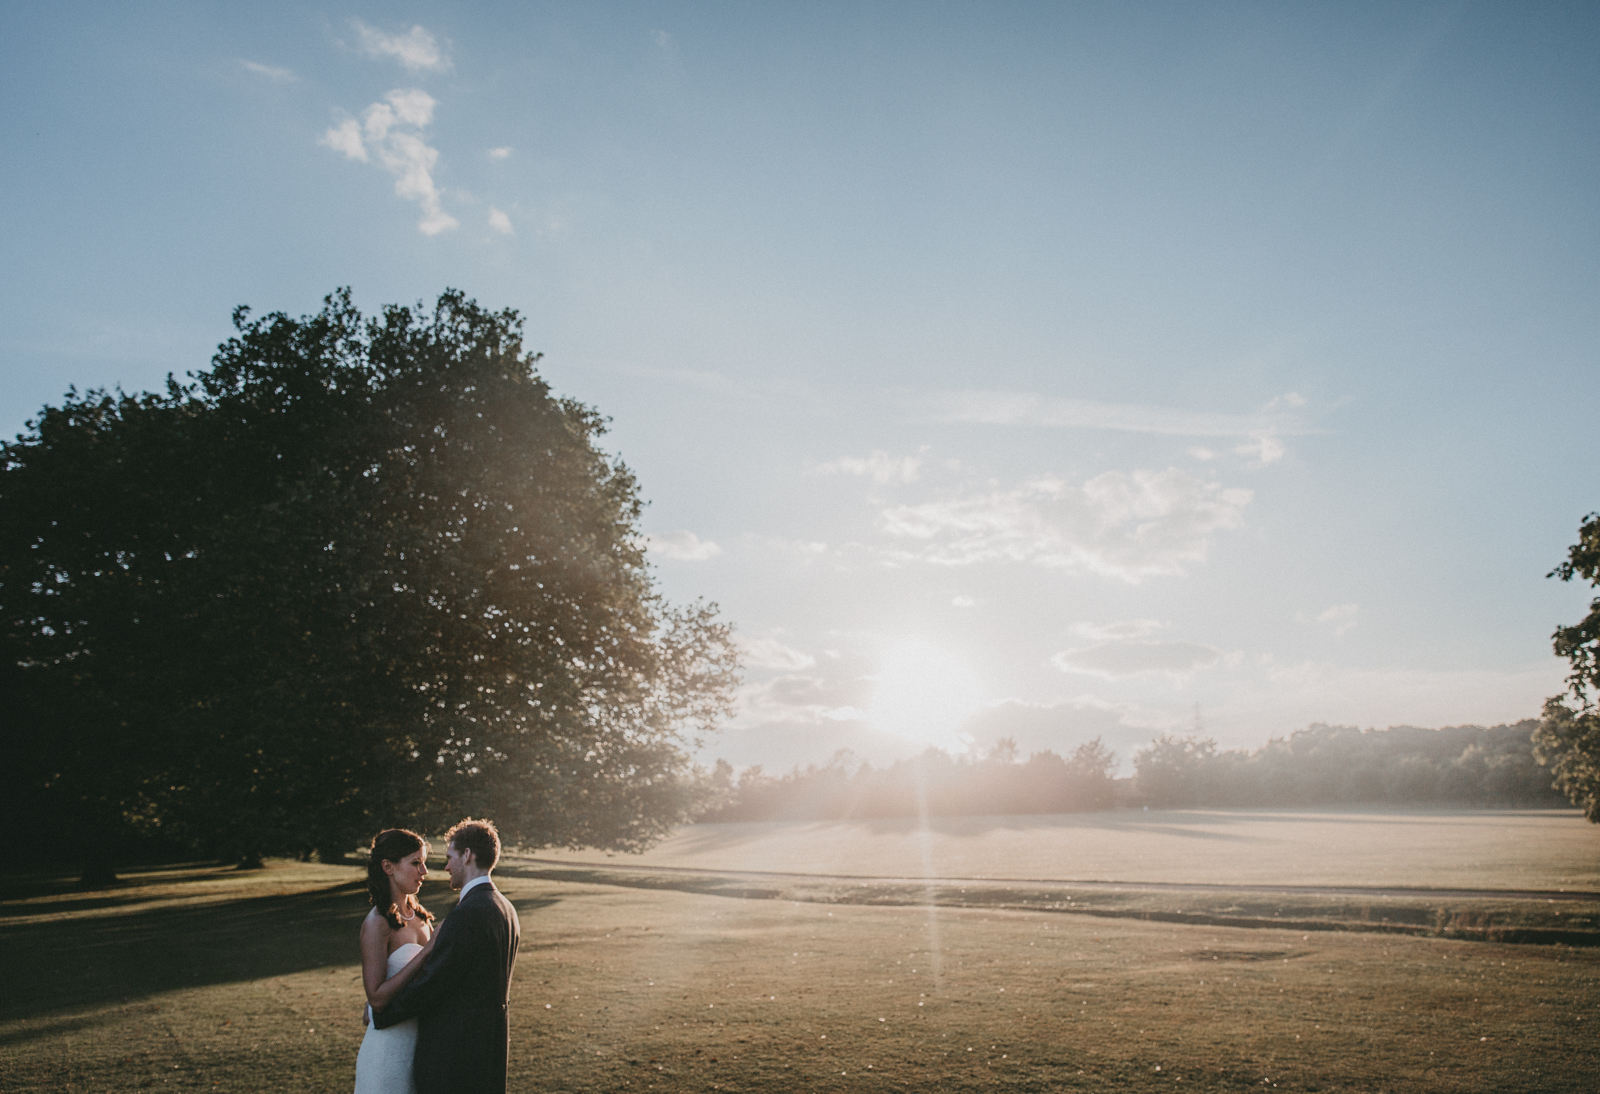 Chris Bradshaw Wedding Photography - Simon & Amanda Wedding Photos-105